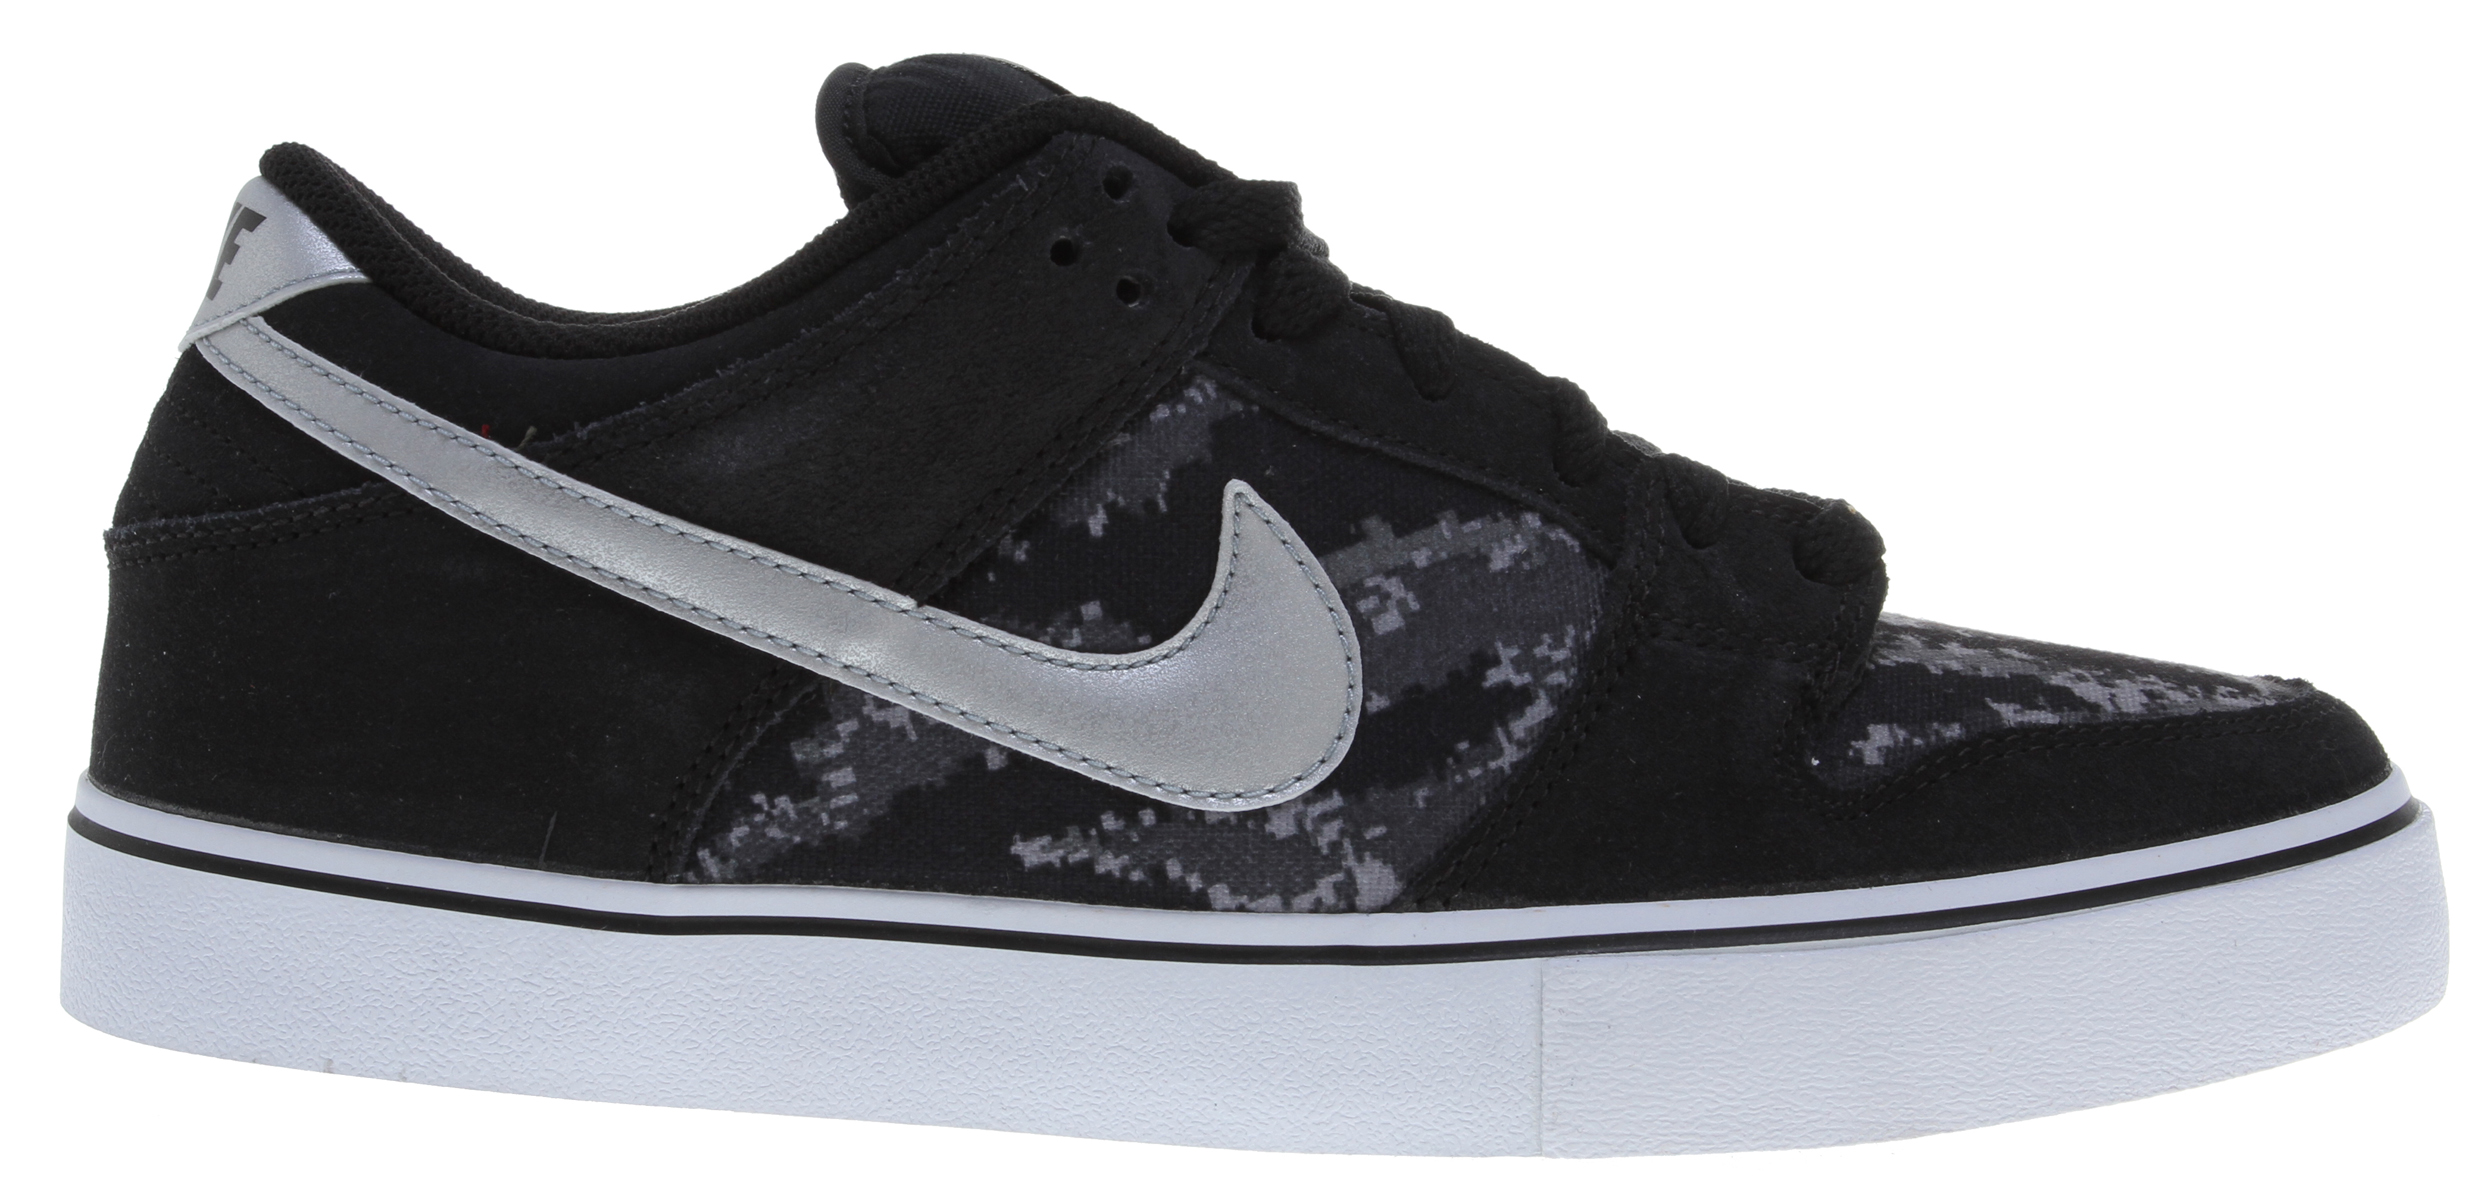 Skateboard Key Features of the Nike Dunk Low LR Skate Shoes: MIDSOLE: Combination drop-in midsole/sockliner designed for maximum comfort and impact protection. UPPER: Leather, suede and Nubuck with classic skate overlays. Lightweight mesh on the tongue and perforations on the vamp for increased breathability. Classic styling with durability and protection. Excellent board control in a low-profile outsole while maintaining good impact absorption. OUTSOLE: Rubber outsole for durability. Designed for flexibility and board feel. - $55.95